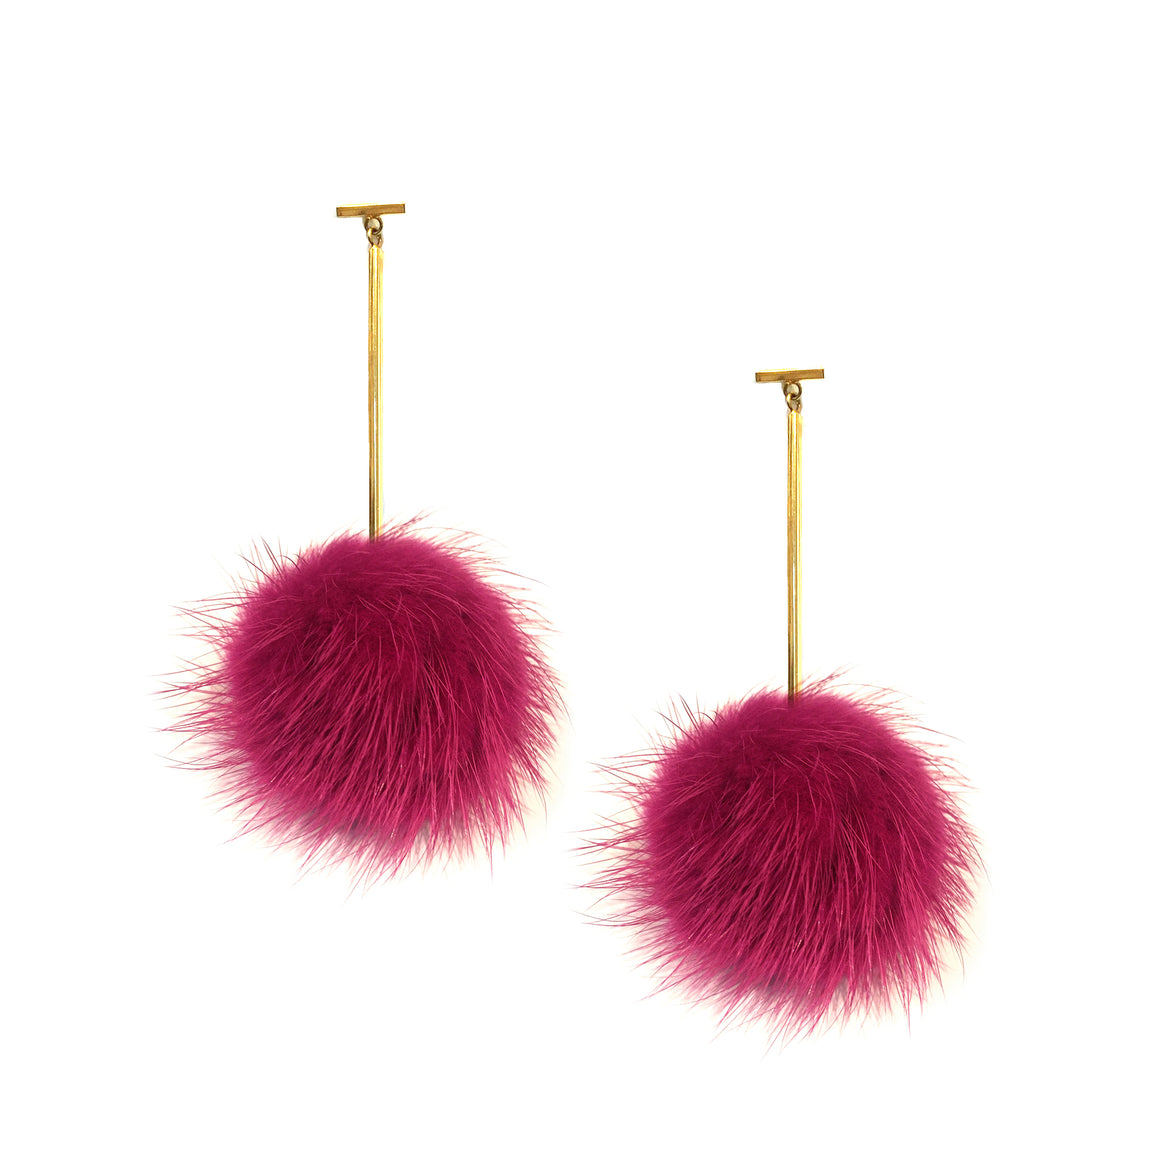 Mauve Mink Pom Pom T Bar Earrings, Earring, Tuleste, Tuleste